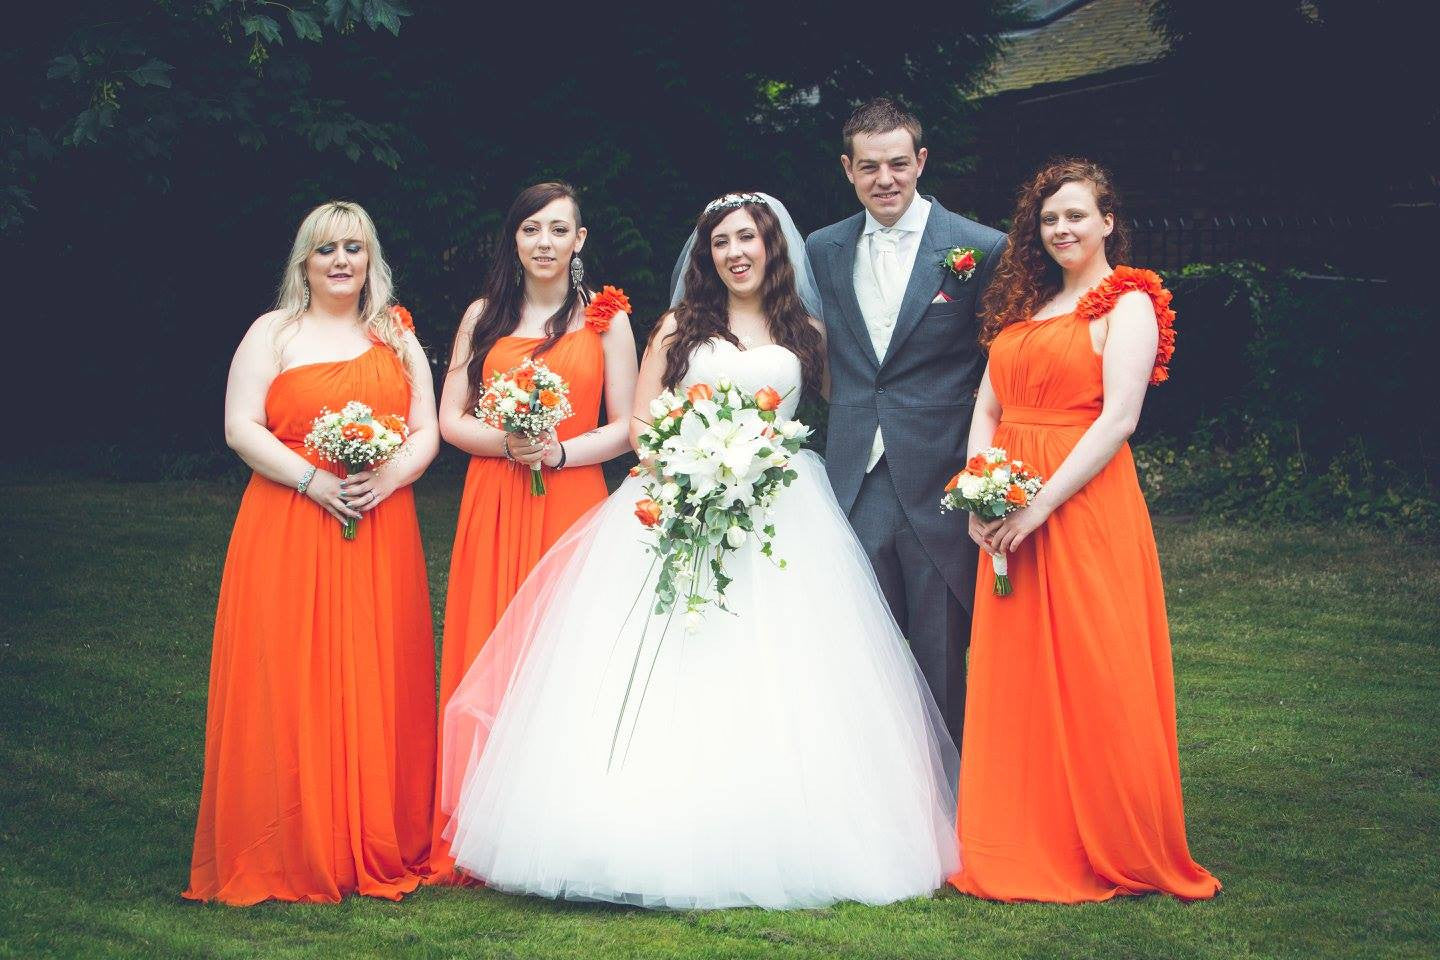 Bridal party with wedding flowers including orange Roses, white Lilies and Gypsophila.